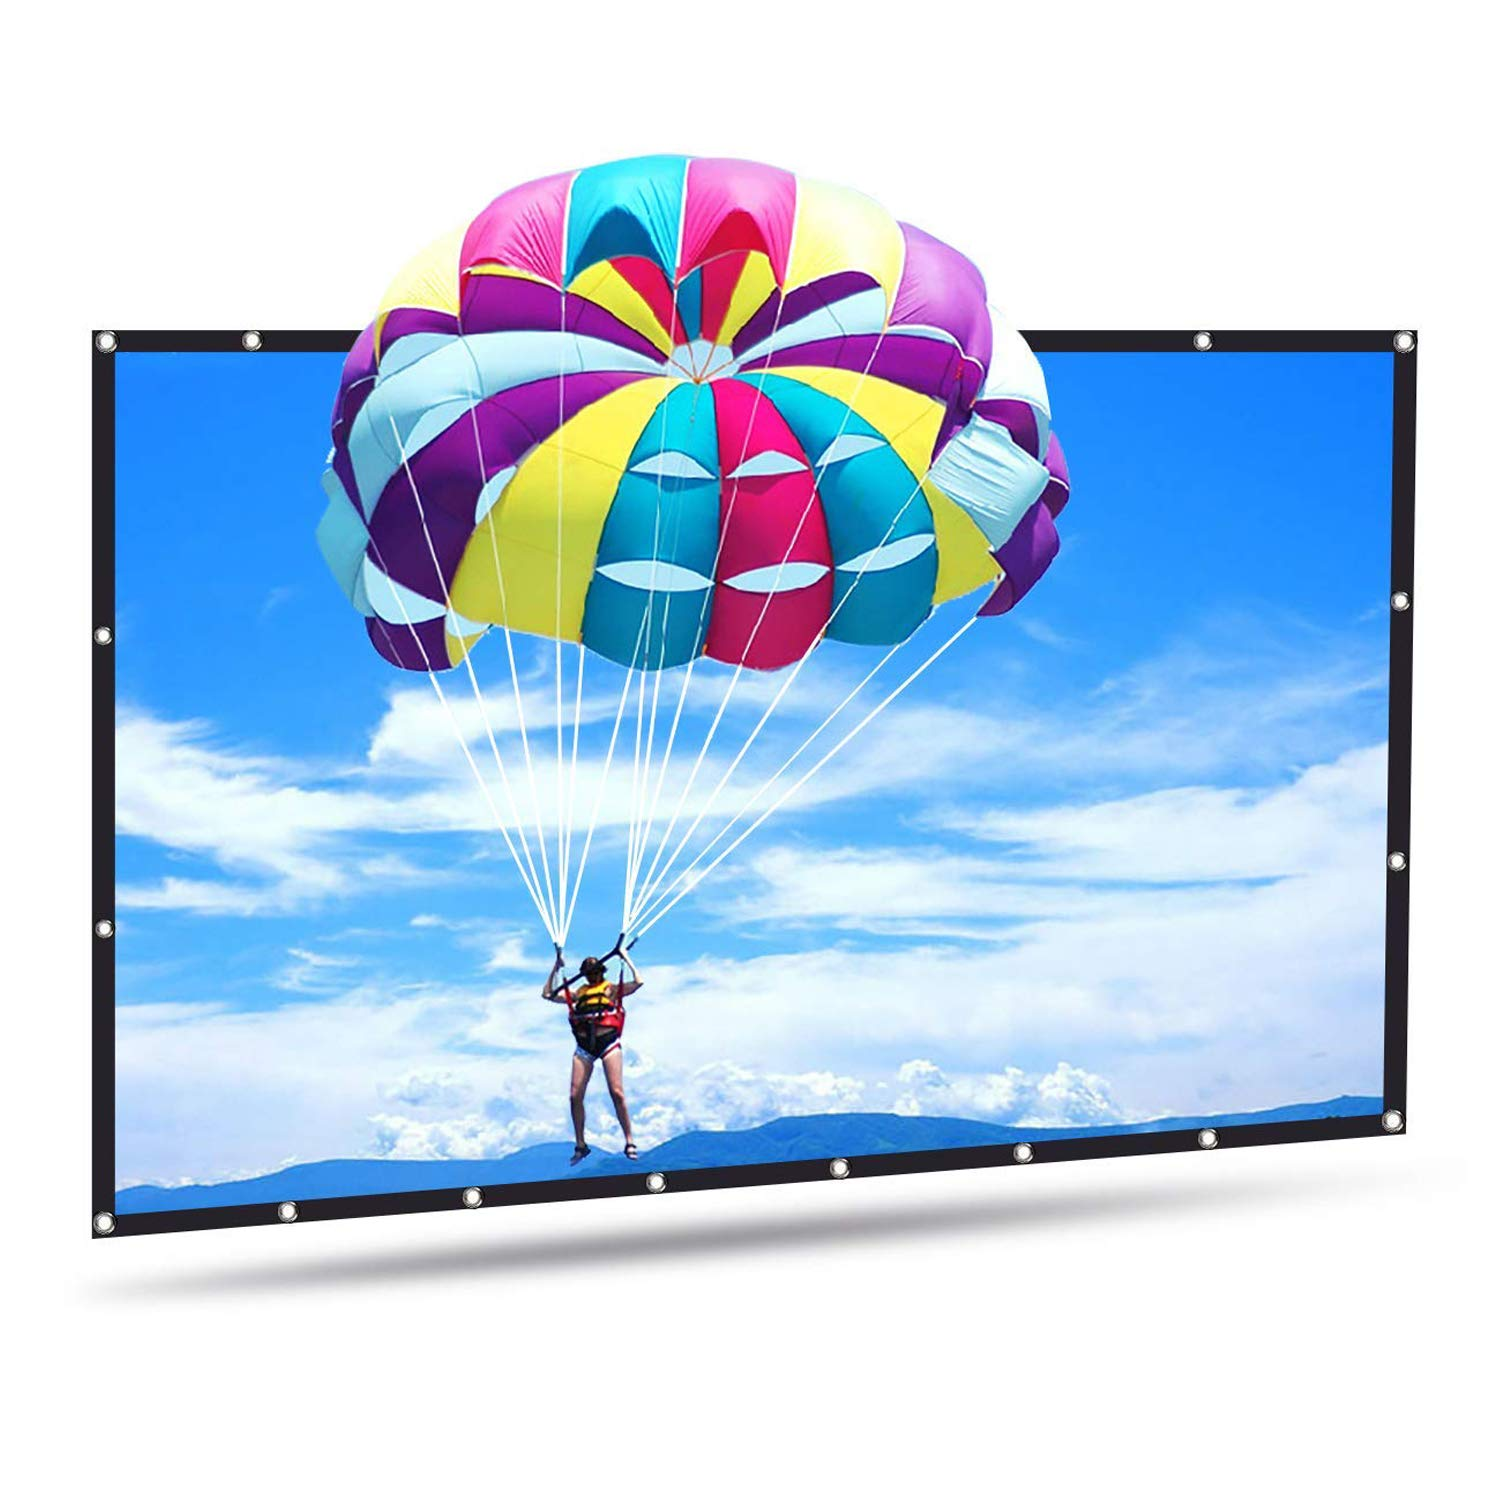 100 inch HD Portable PVC Projector Screen with Hanging Hole, Joyhero 100